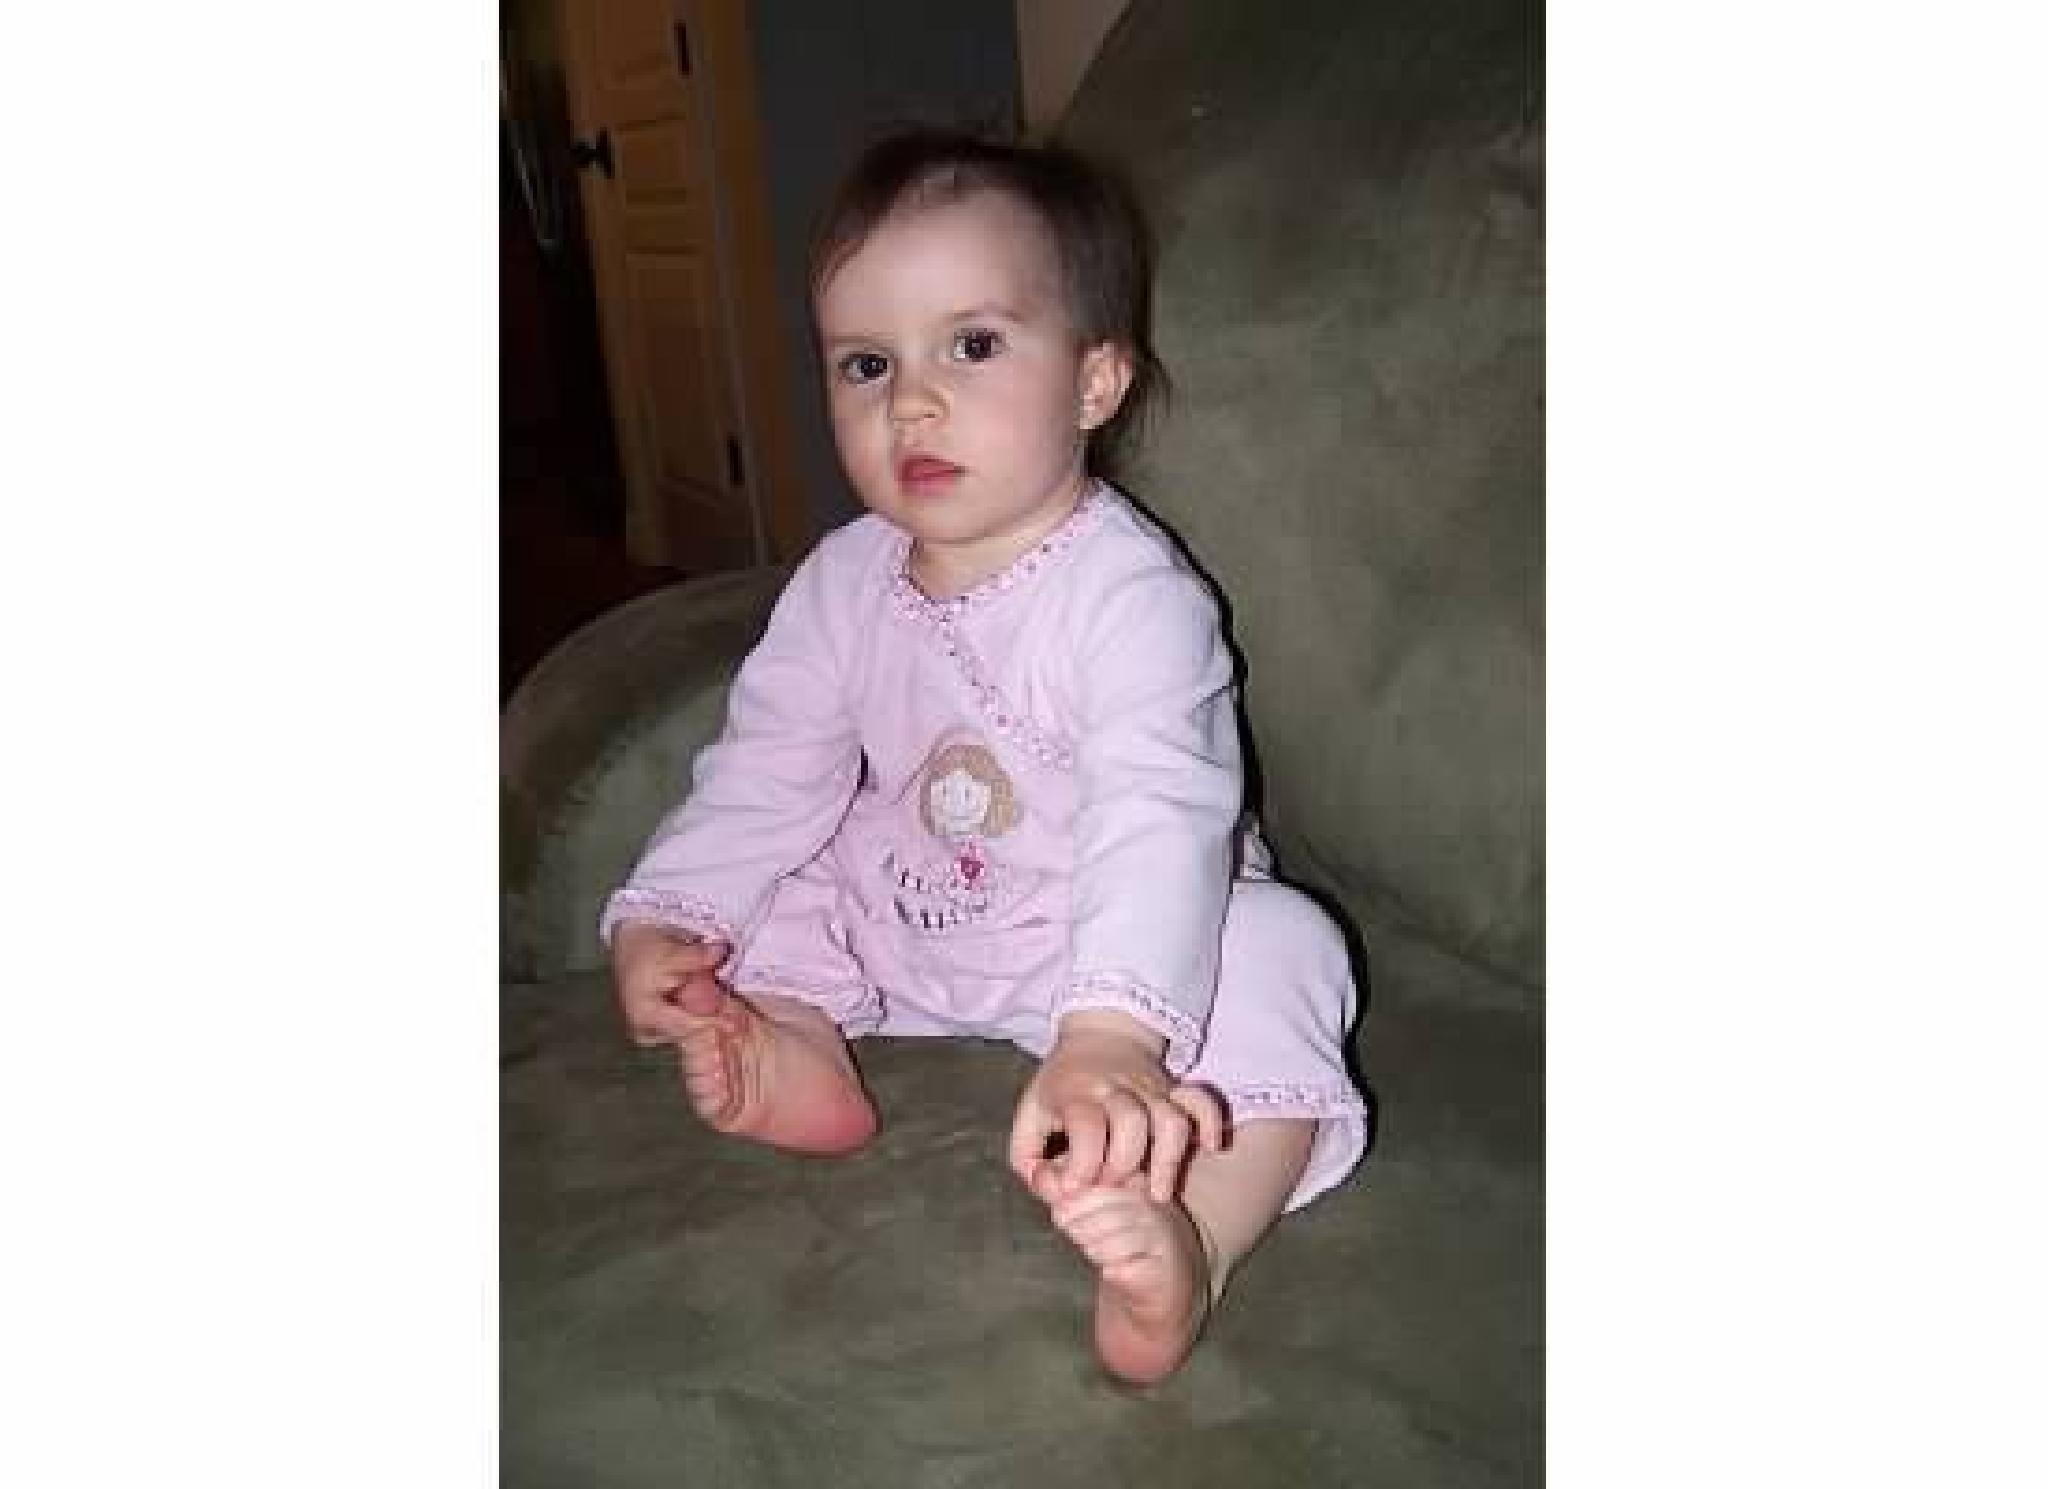 Granddaughter Avery by Sherry Paris